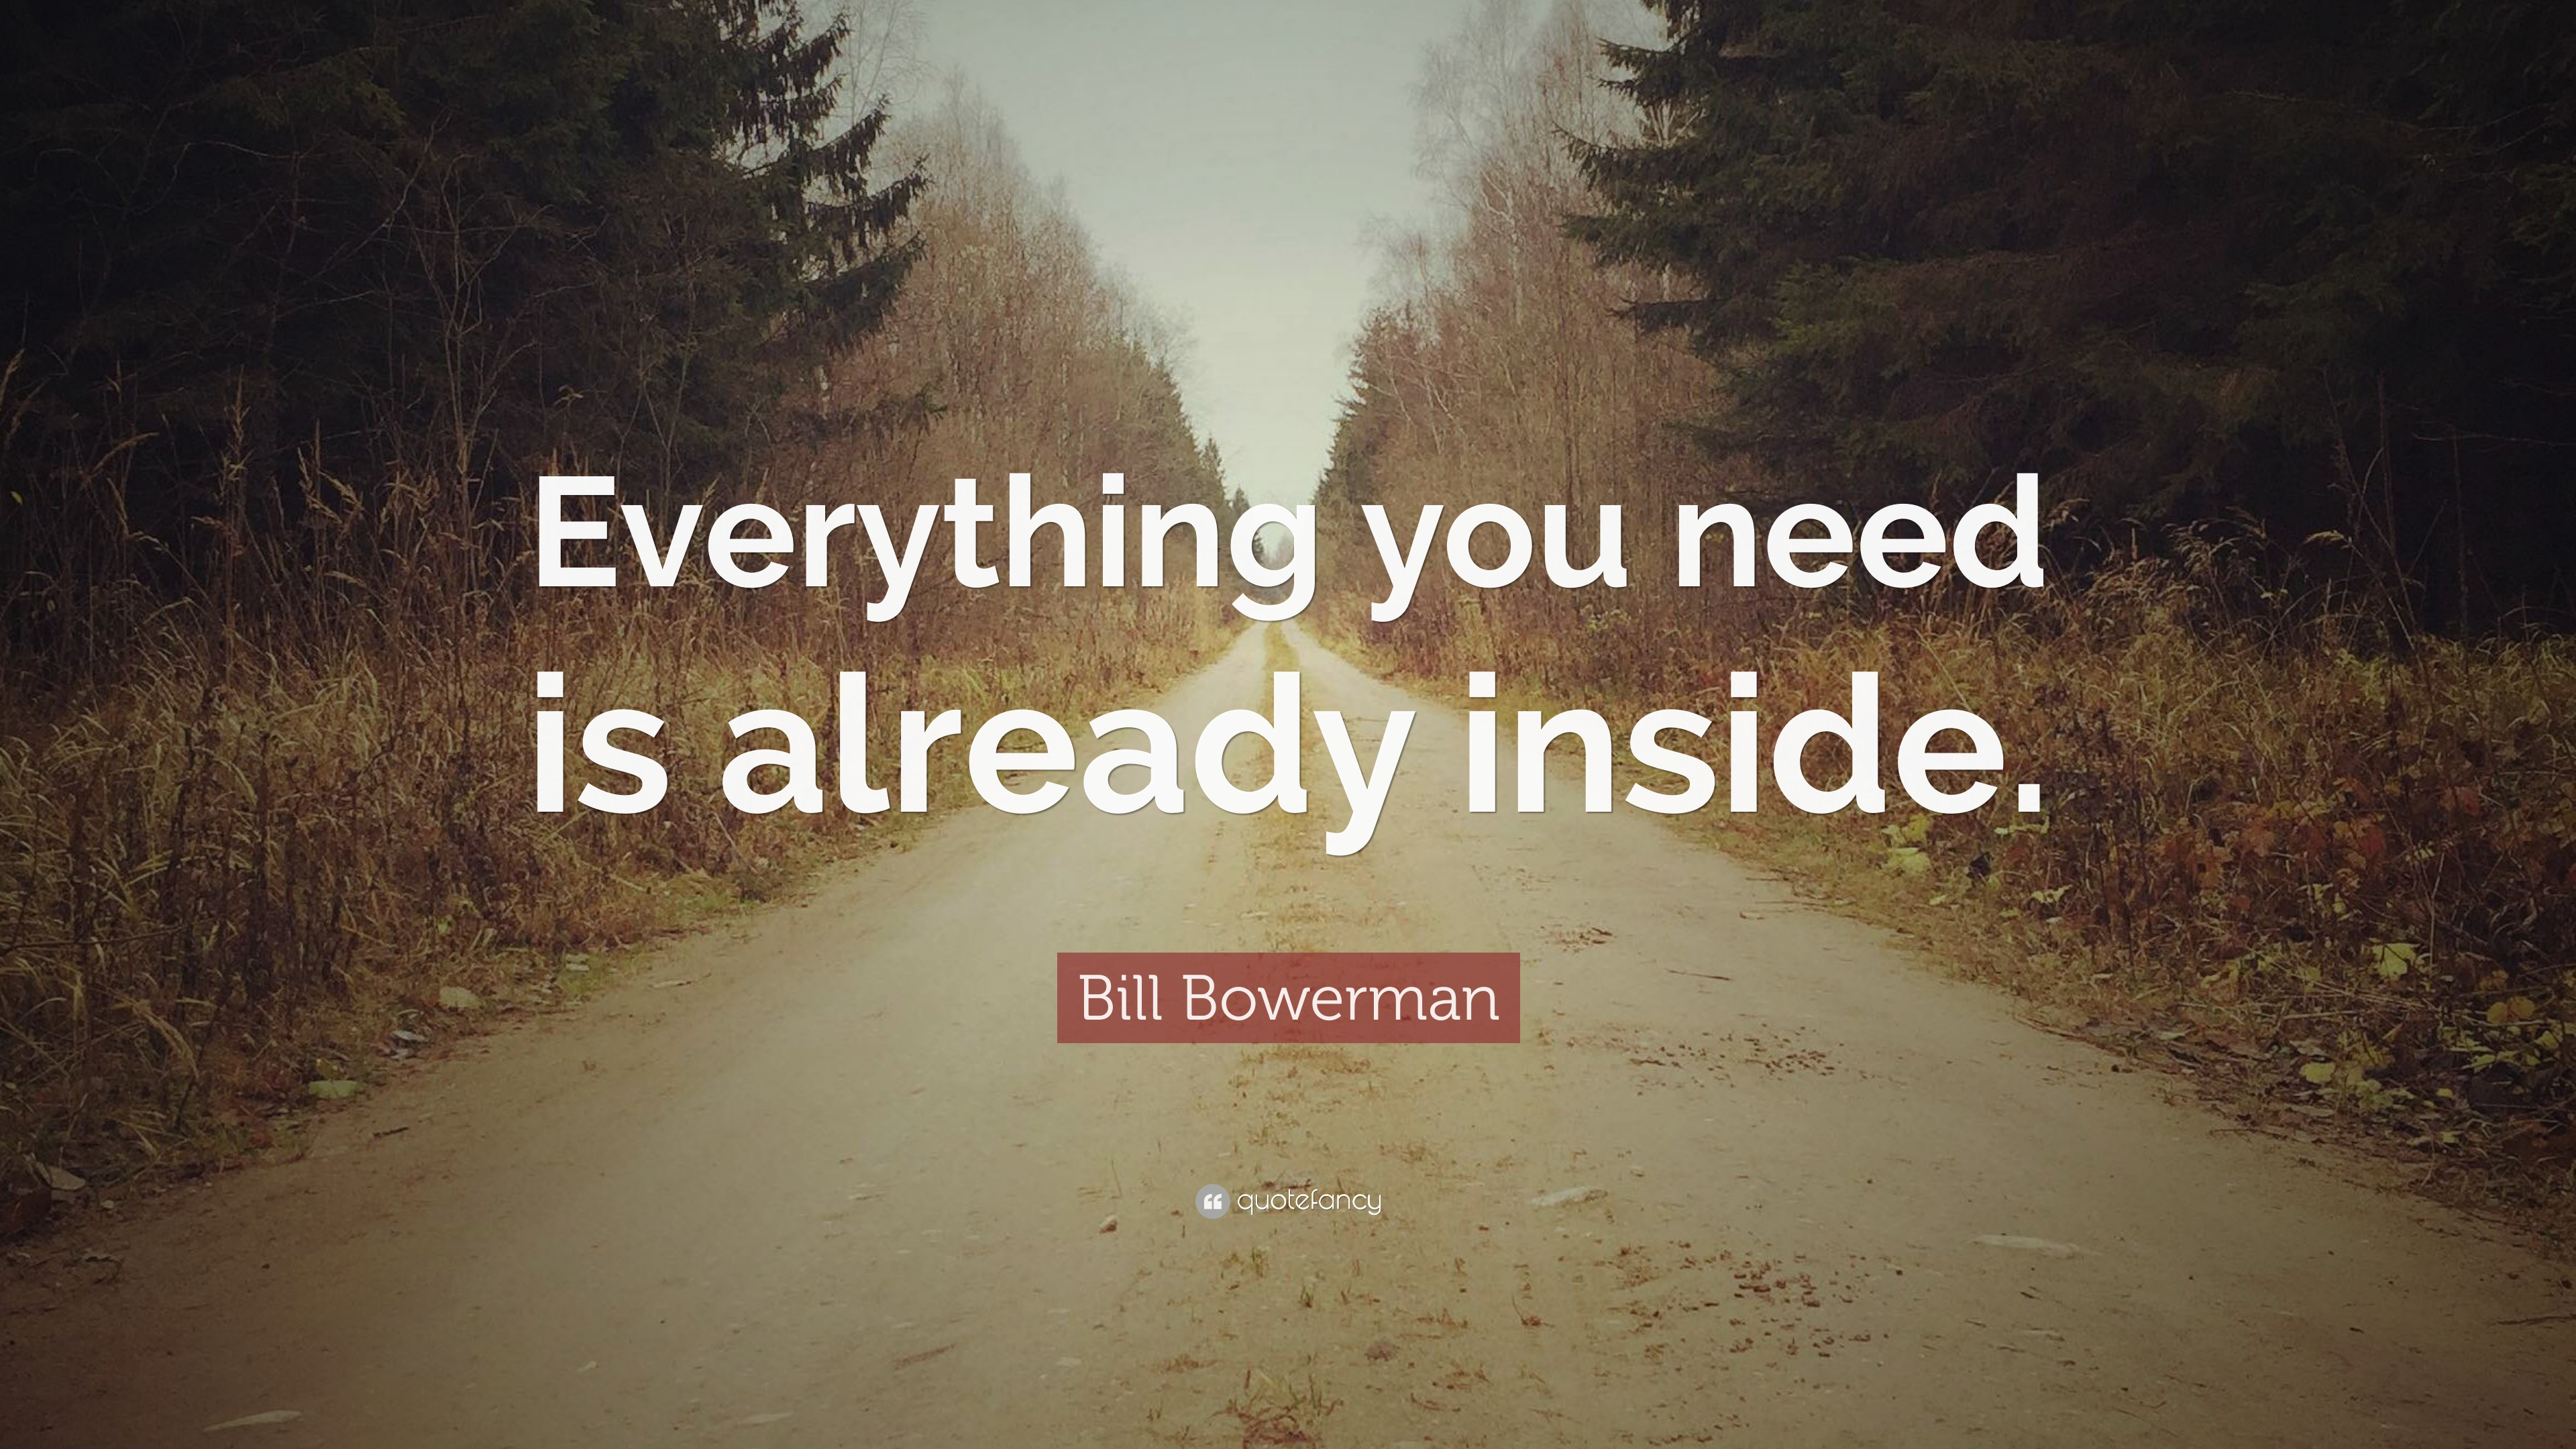 bill bowerman quote   u201ceverything you need is already inside  u201d  12 wallpapers